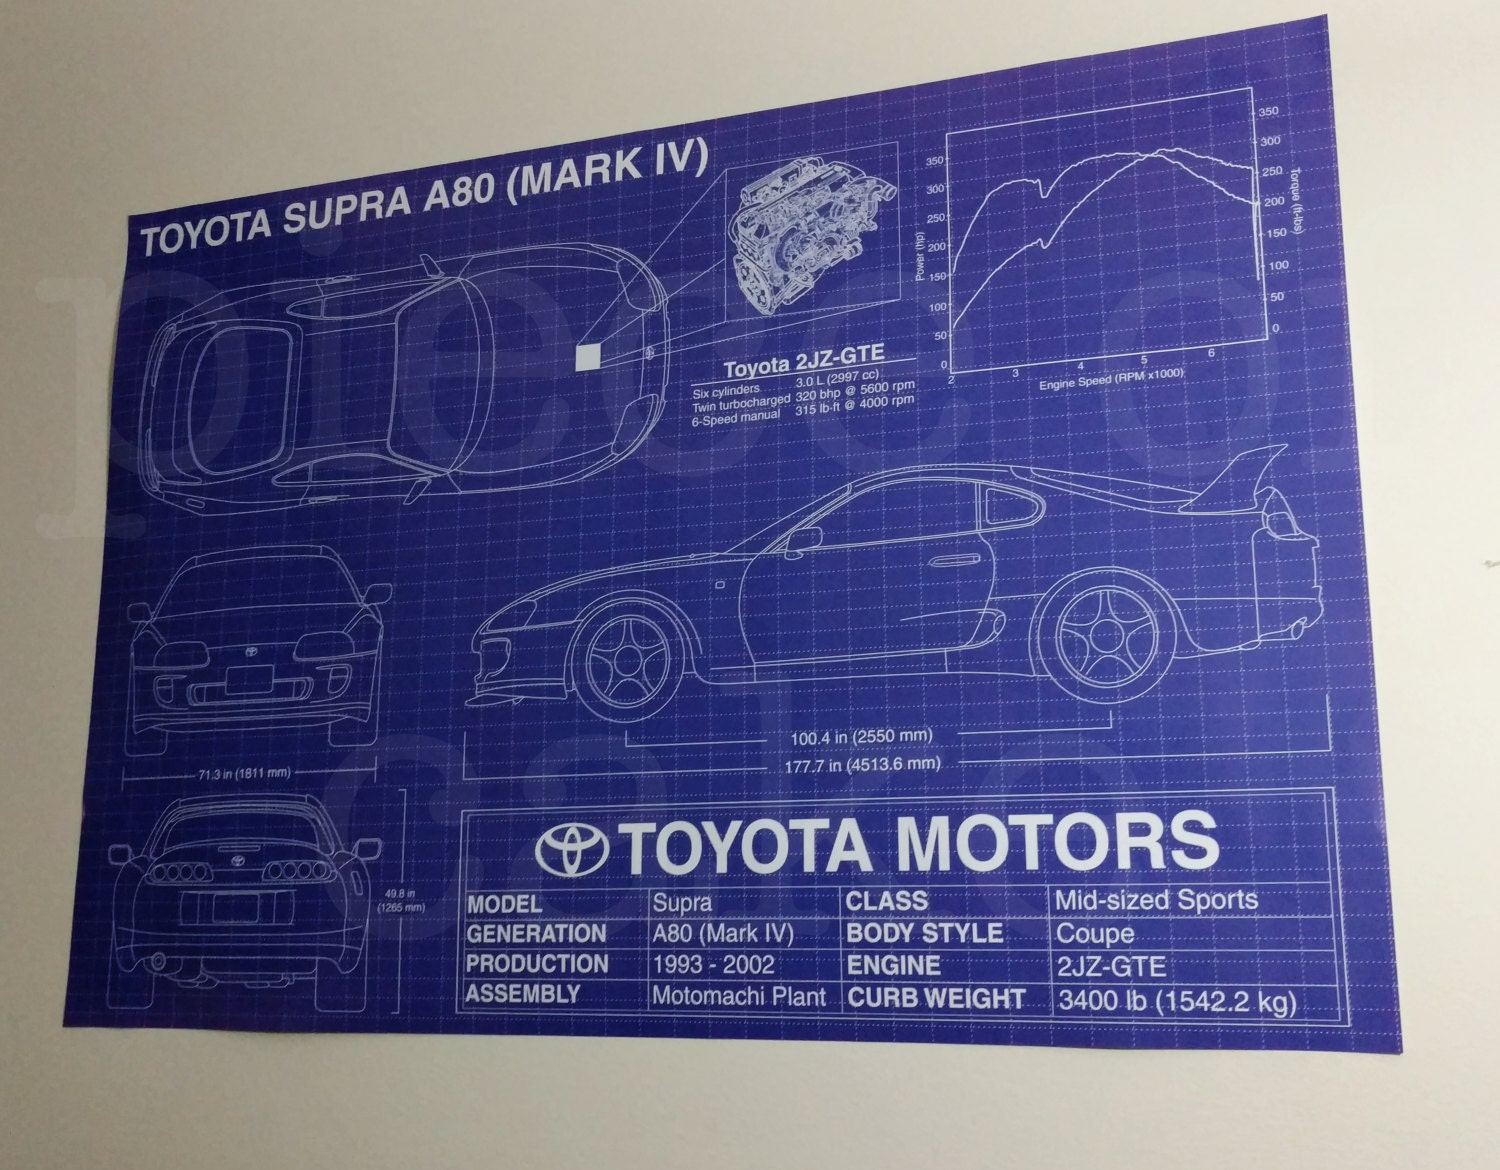 Toyota supra a80 mark iv 4 blueprint specs poster 27x39 zoom malvernweather Images